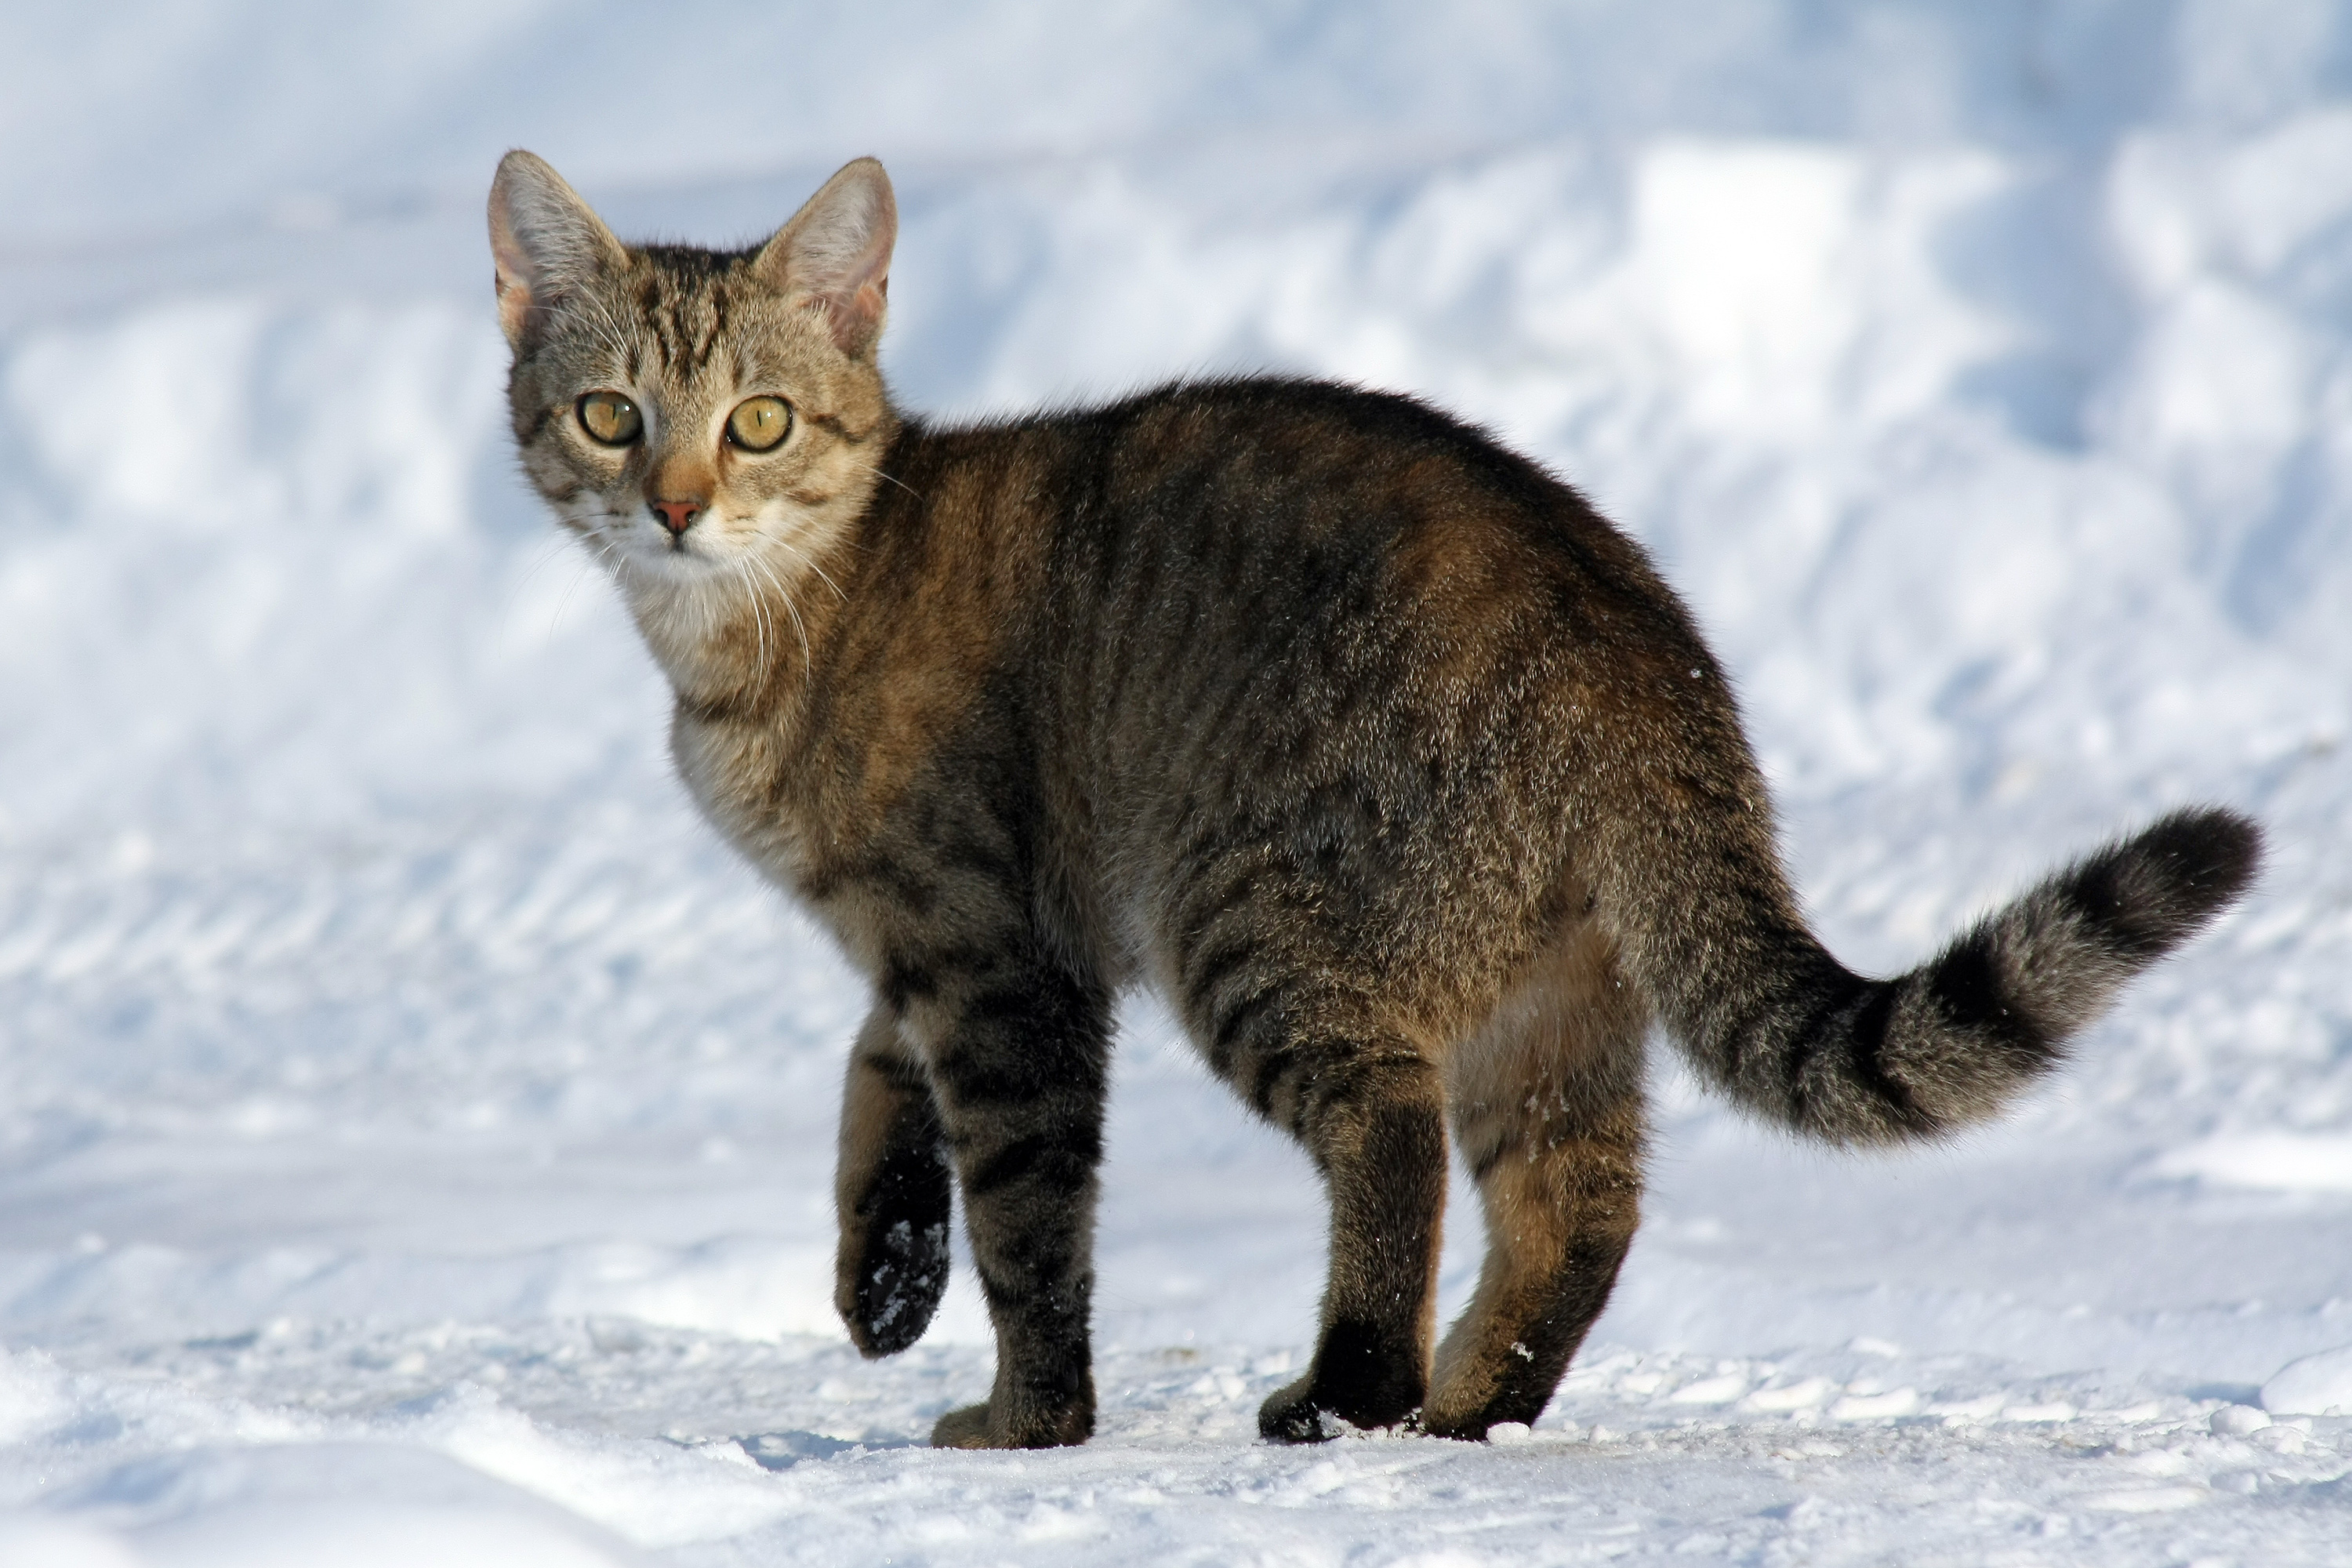 An image of a cat standing in the snow.